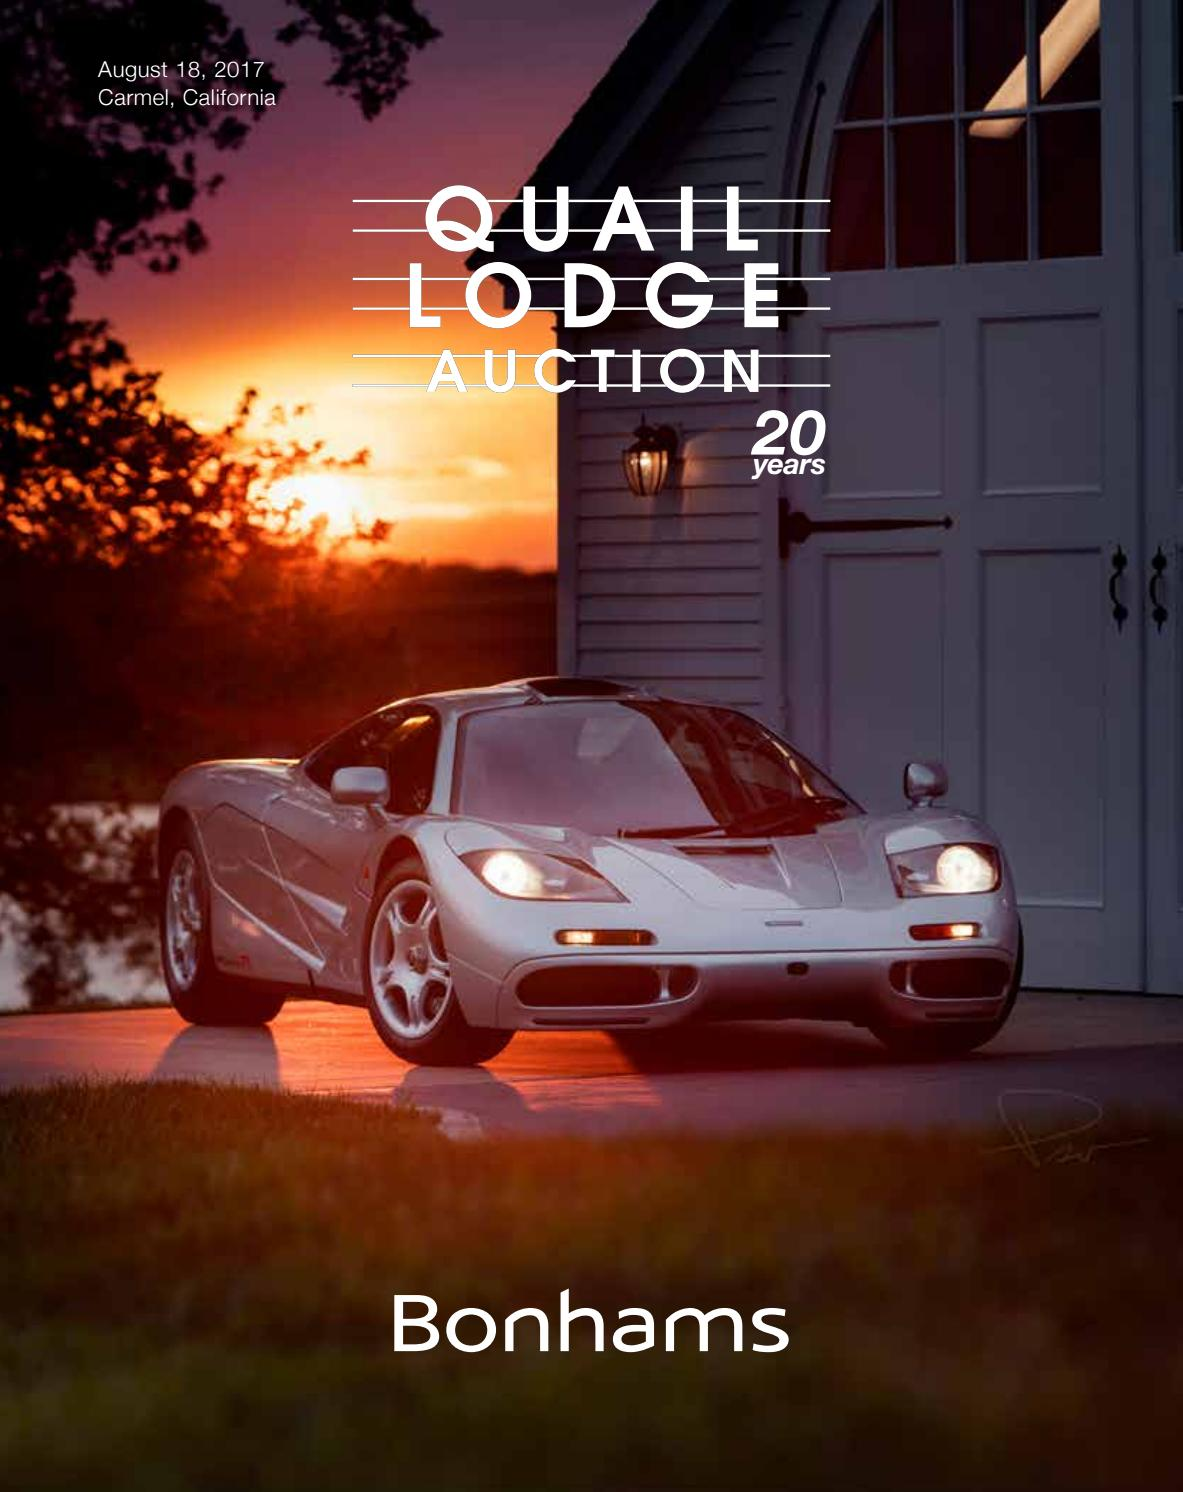 Bonhams Quail lodge auction 2017 - 20 years by guido